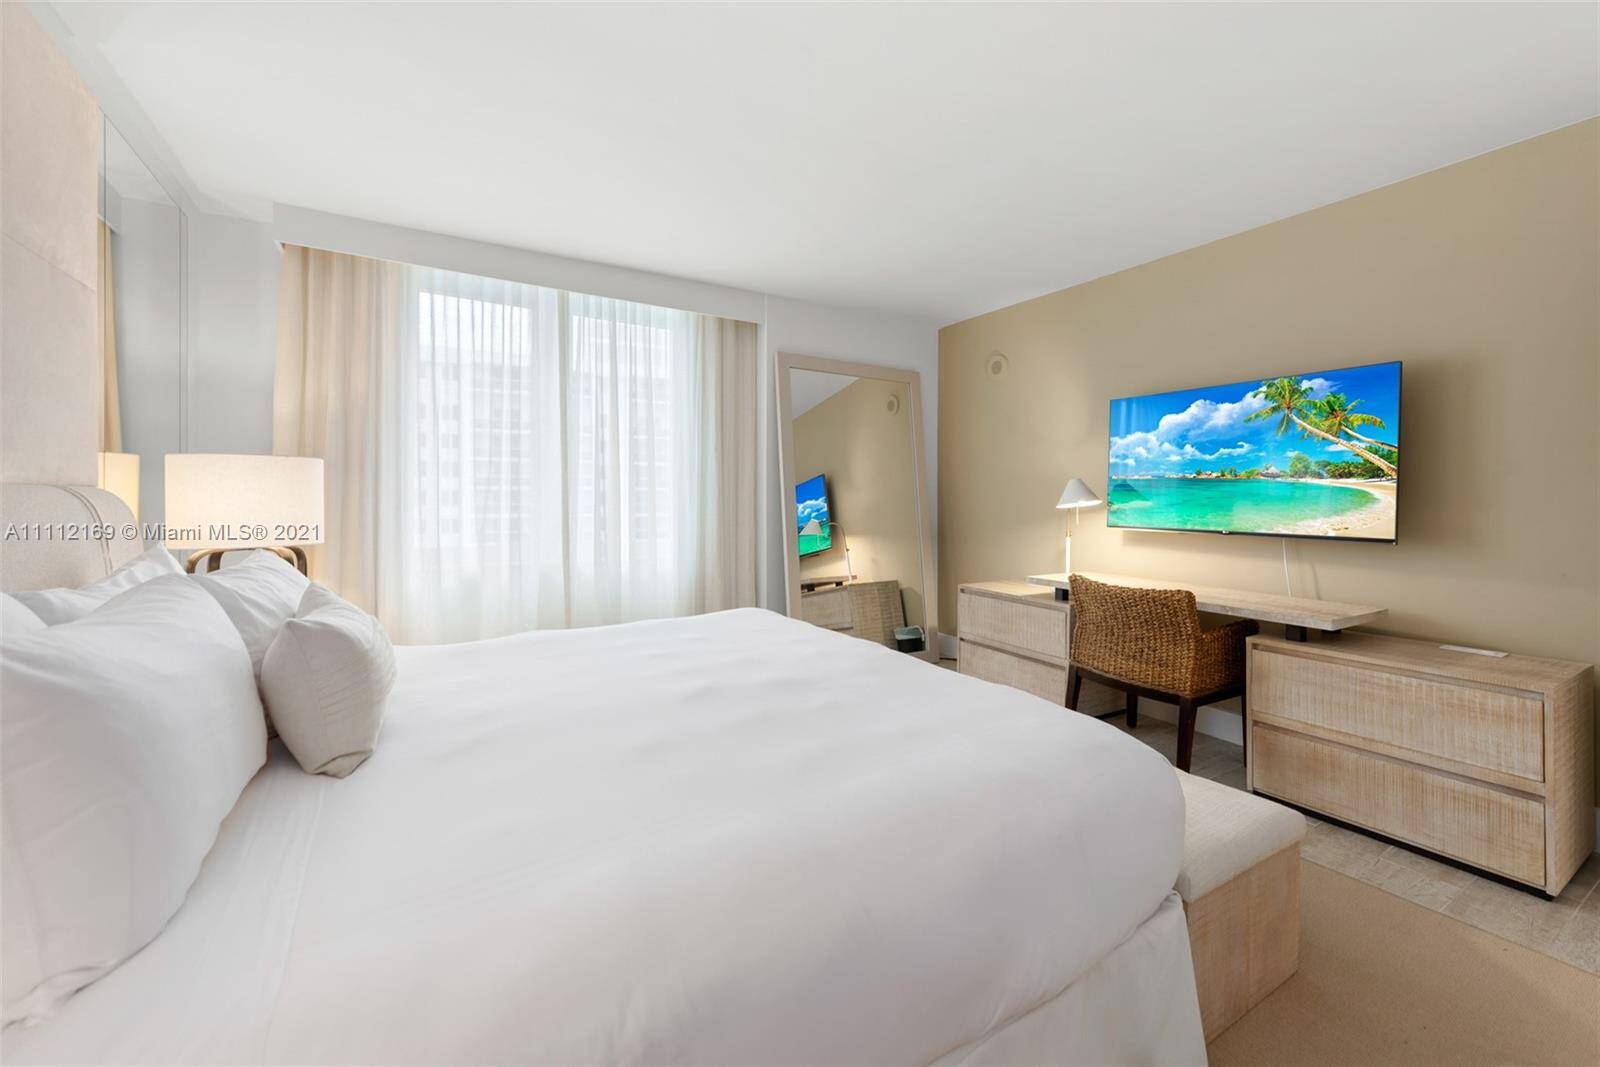 1 Hotel & Homes For Sale| Unit #1211